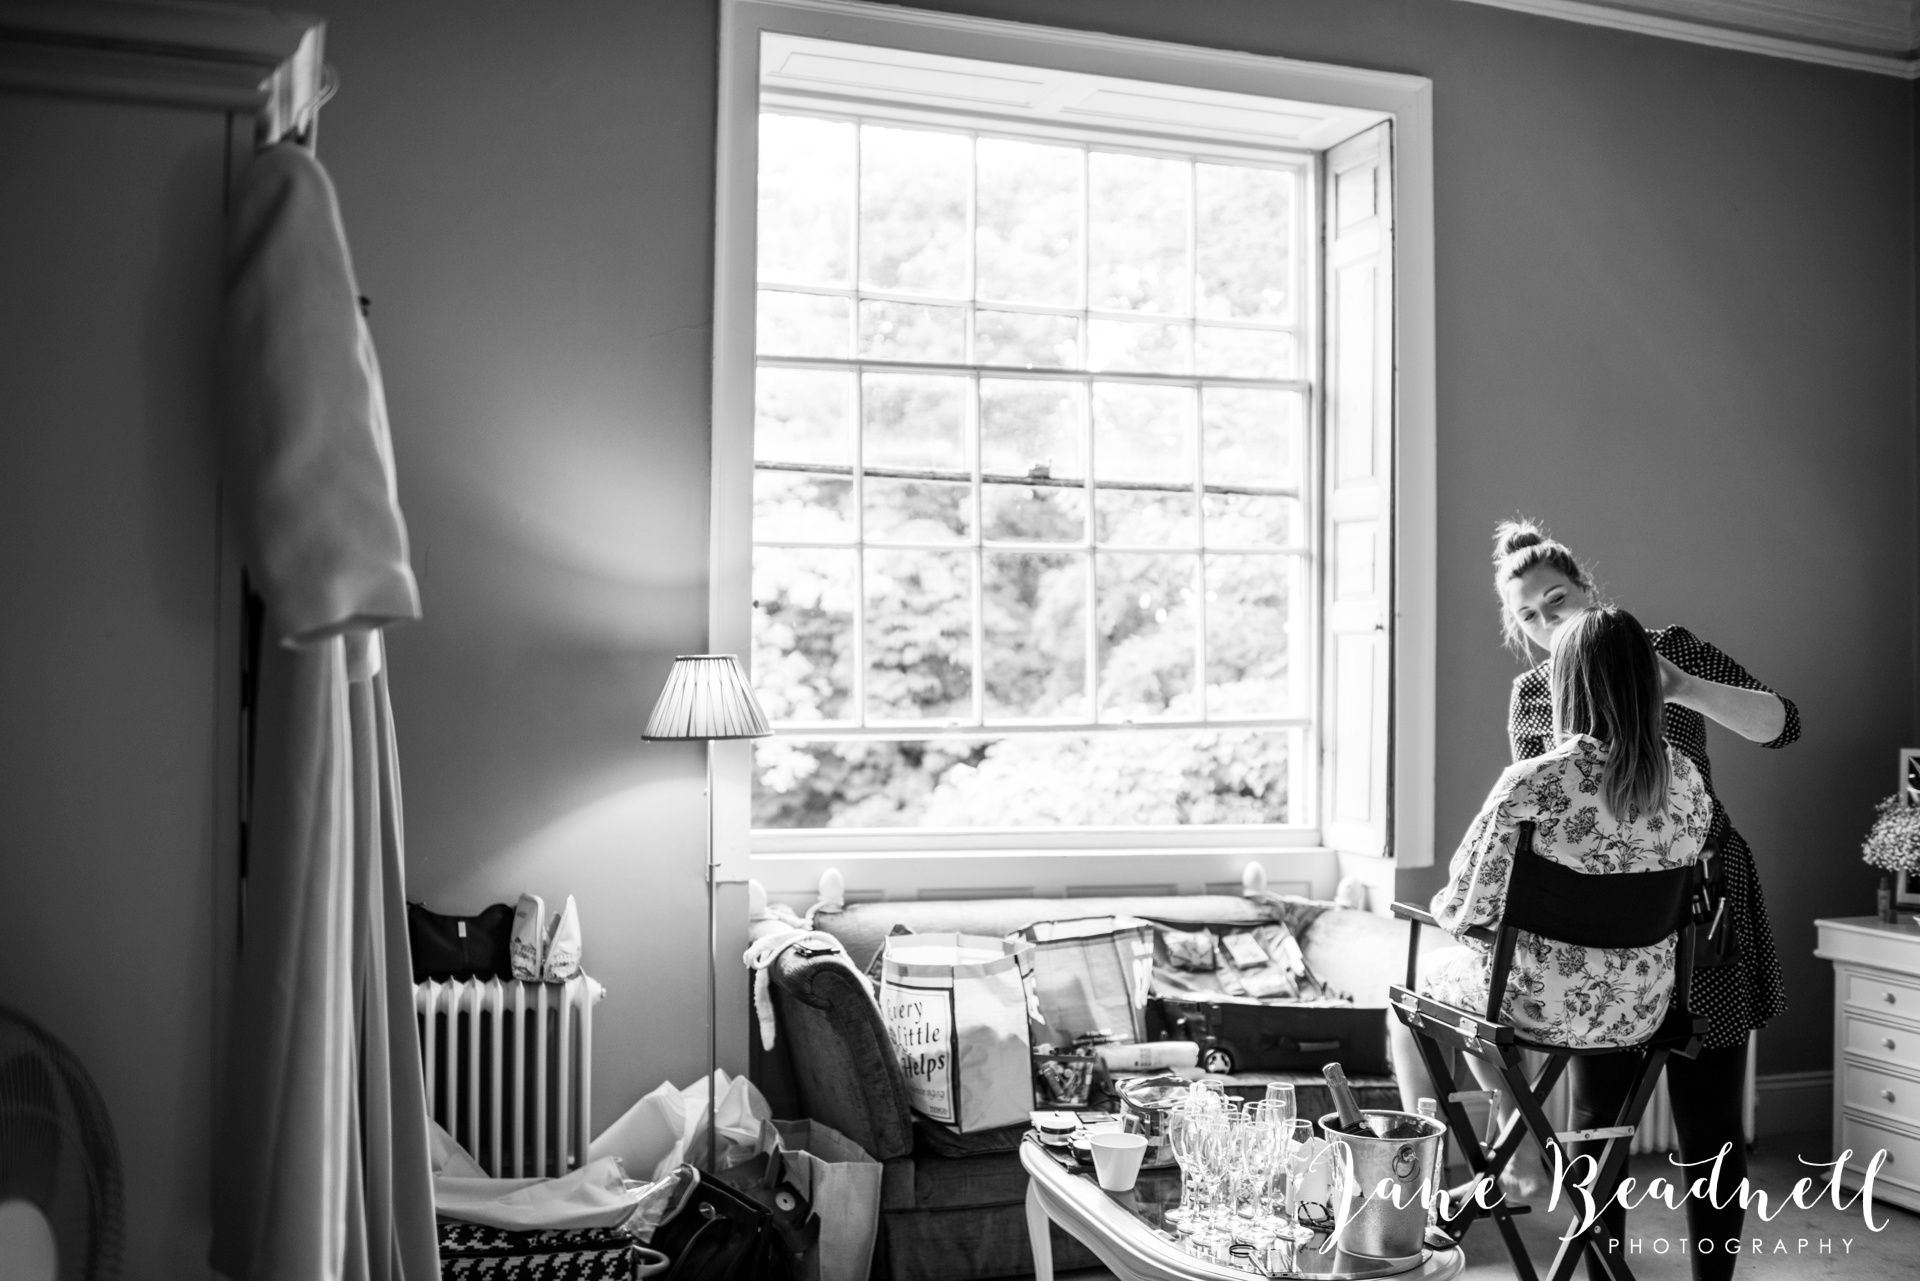 Jane Beadnell fine art wedding photographer The Old Deanery Ripon_0001